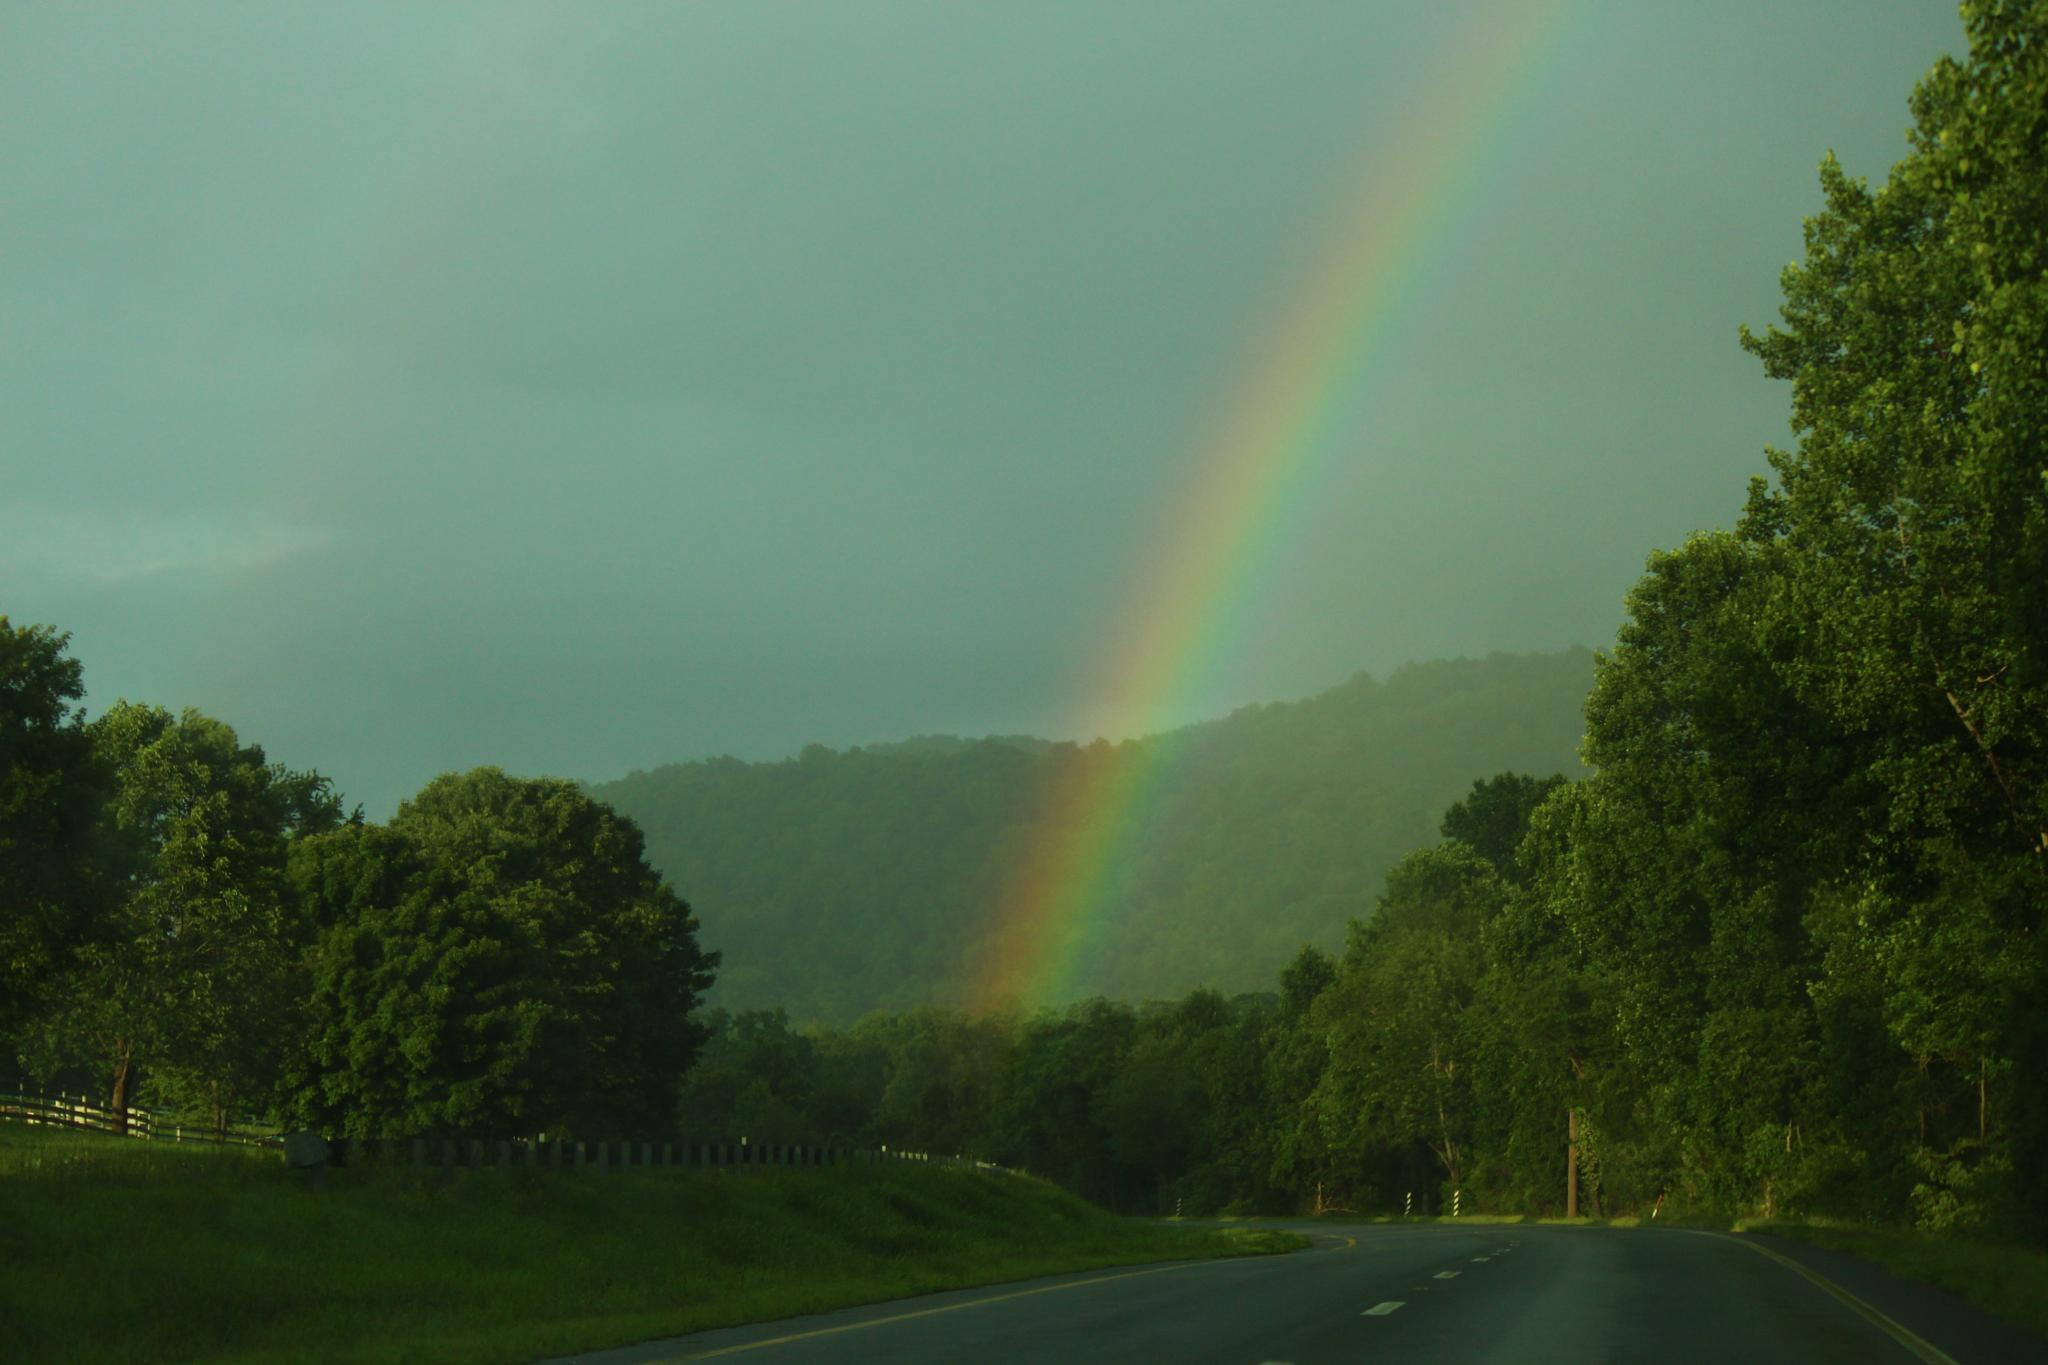 A rainbow to end the day by Clark L. Roberts